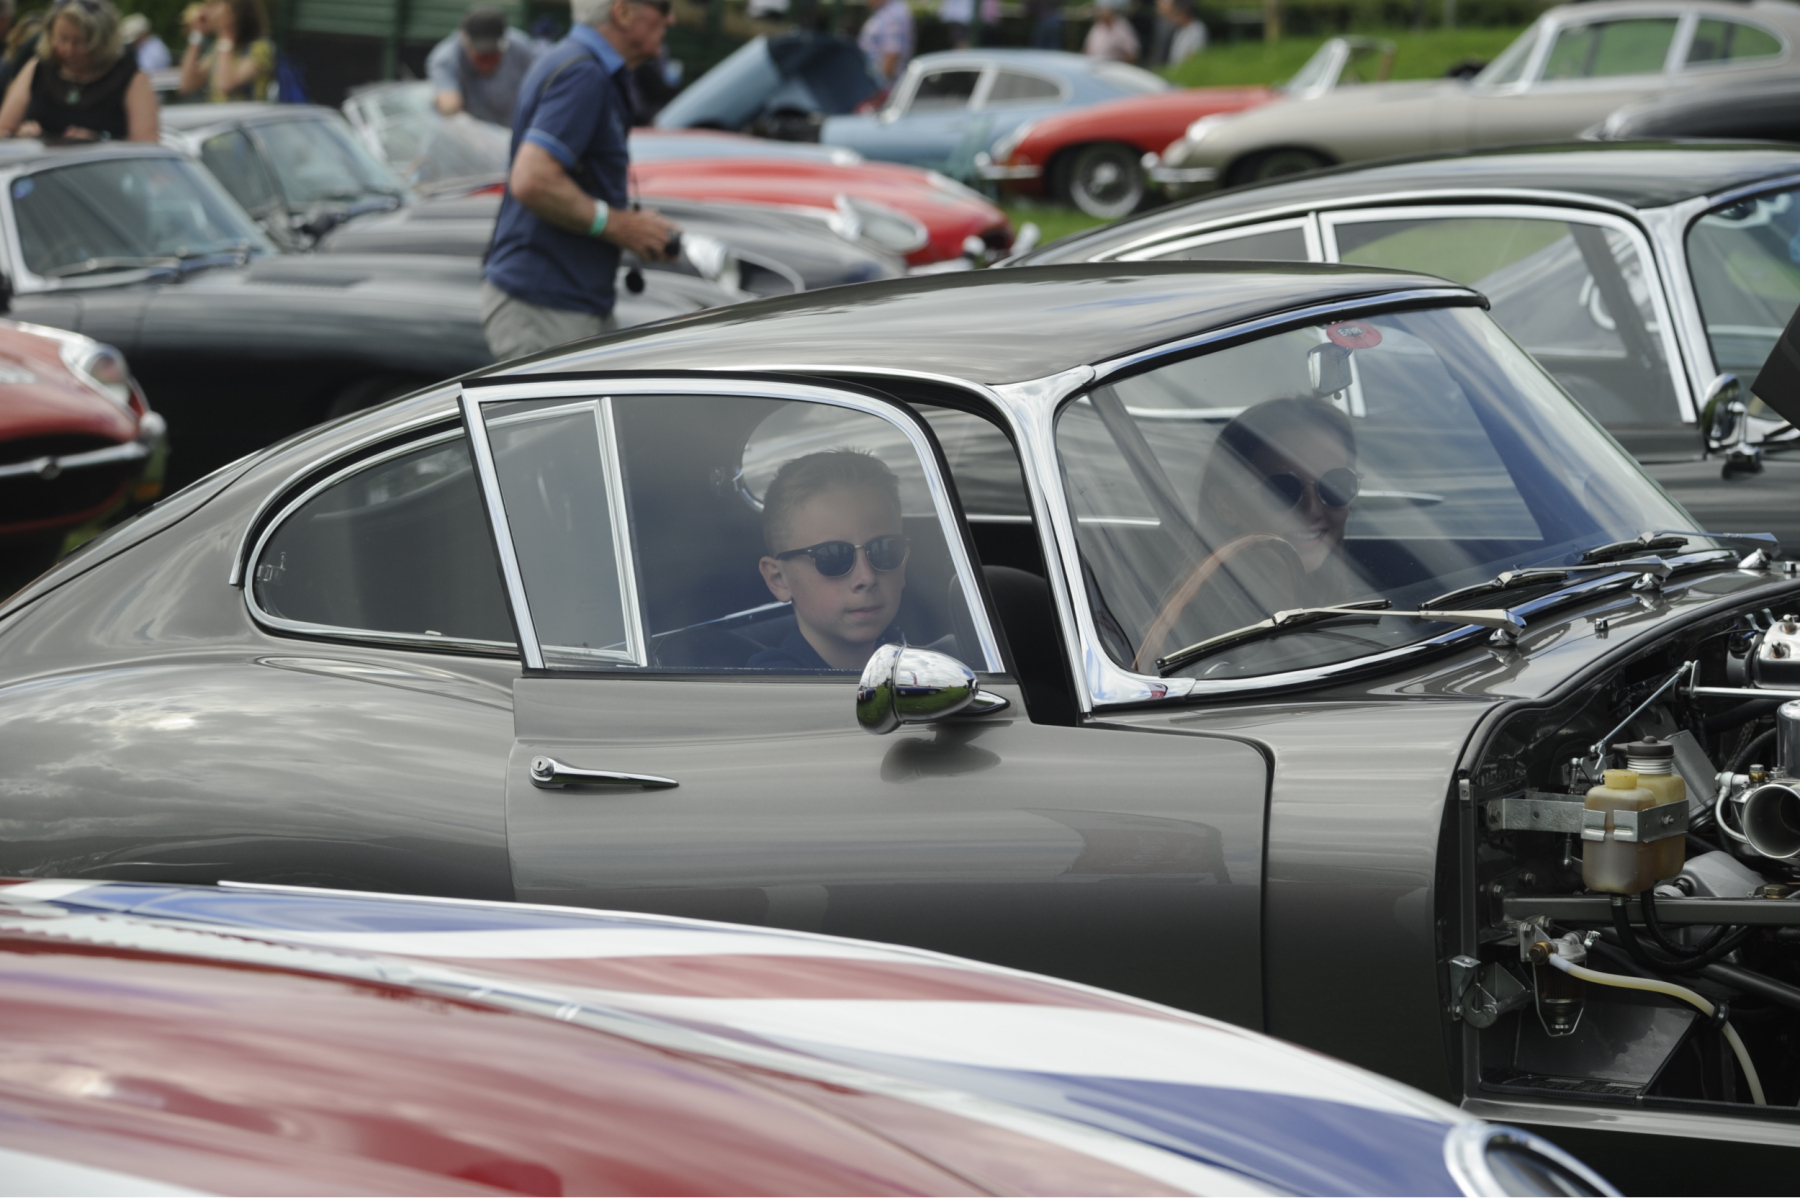 E-type-60-Saturday-photo-by-Abigail-Humphries-295